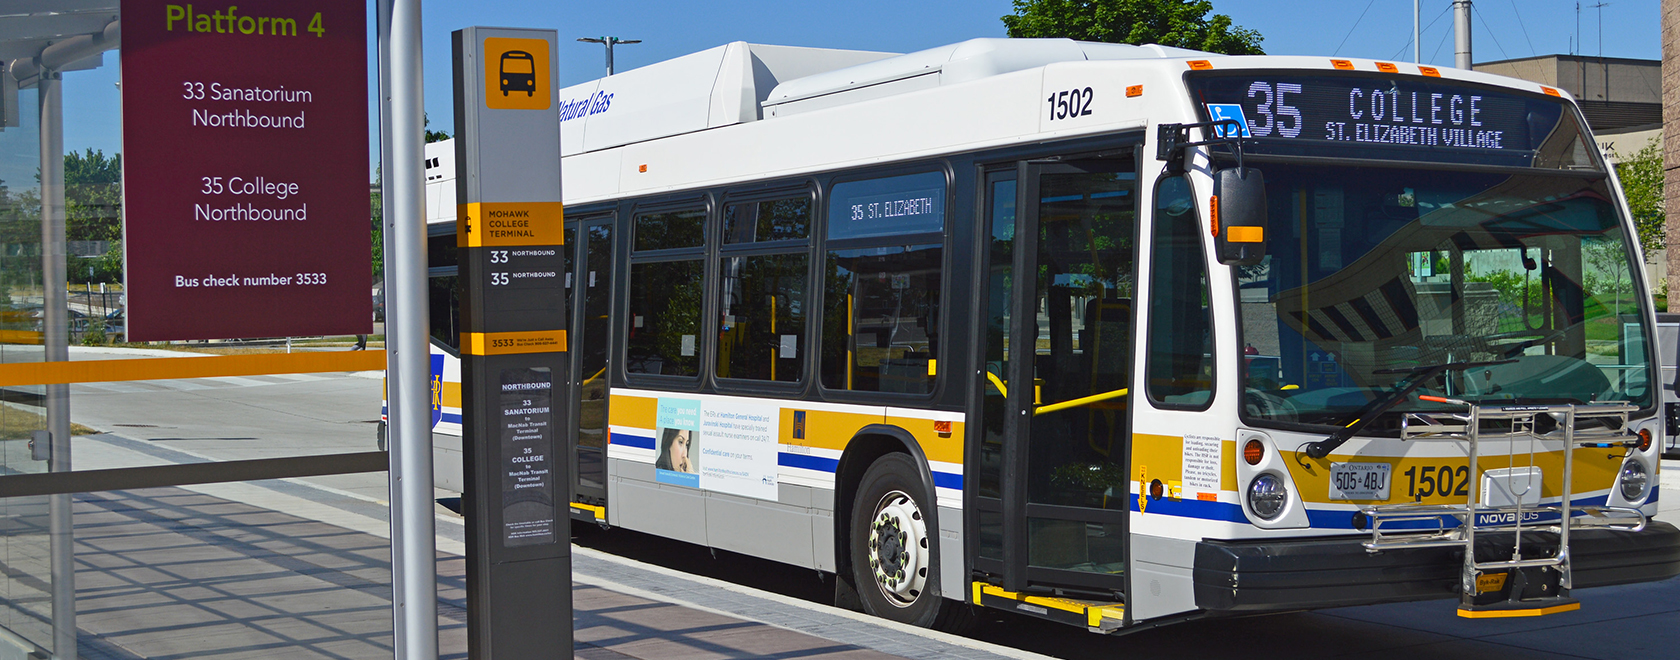 hsr bus schedules & fares | city of hamilton, ontario, canada